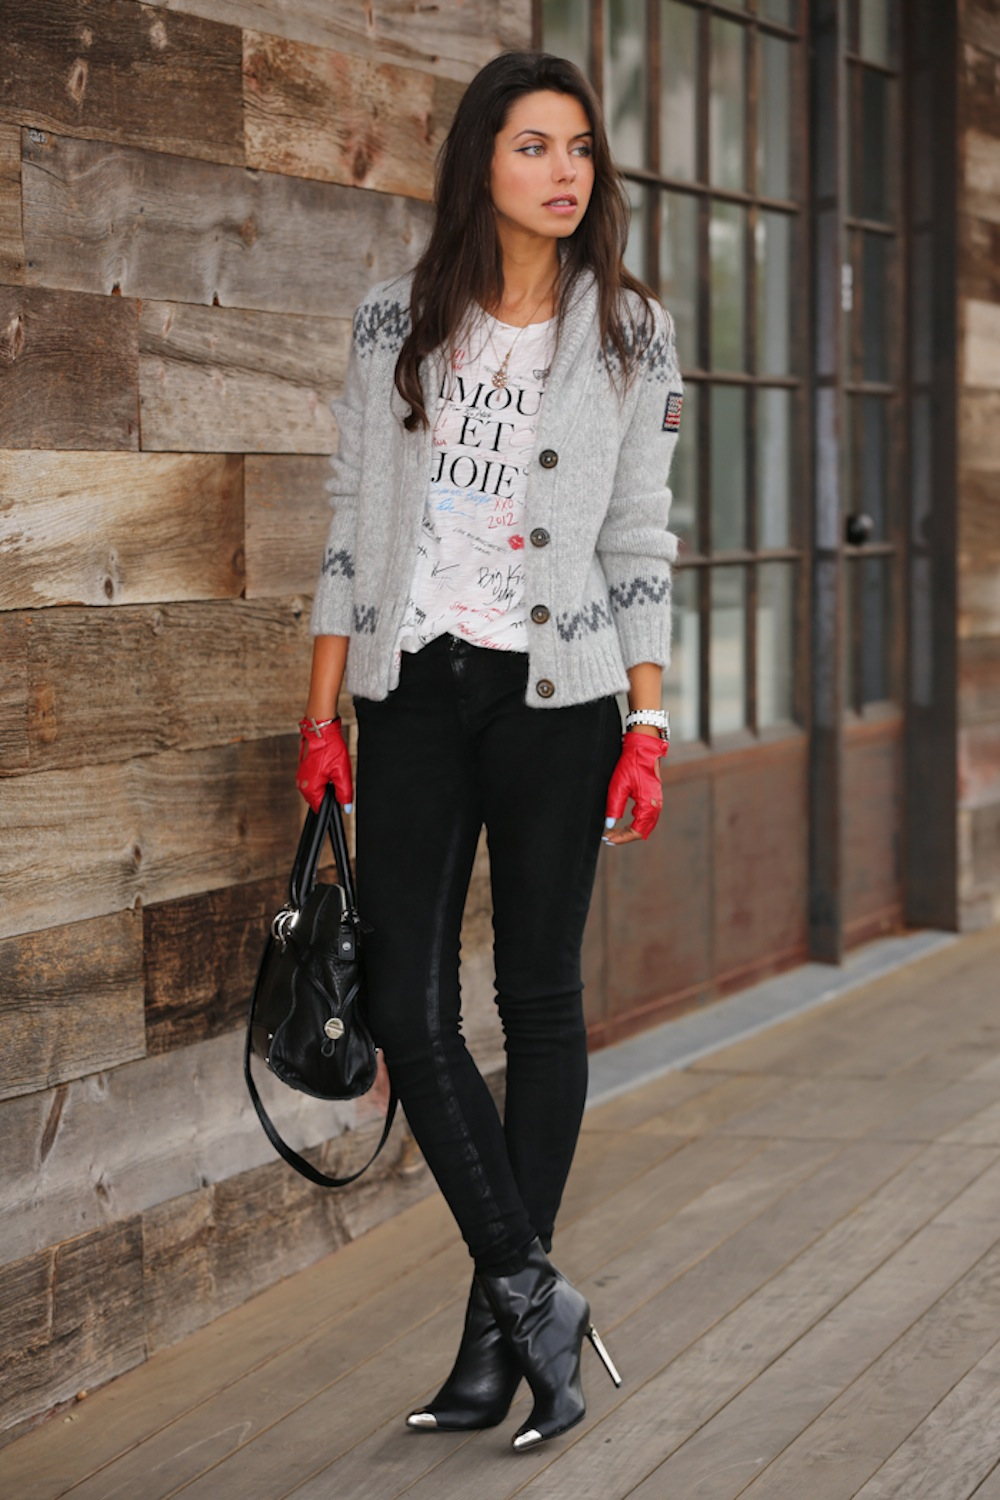 TRUE_RELIGION_SWEATER_VIVALUXURY_BLOG-3